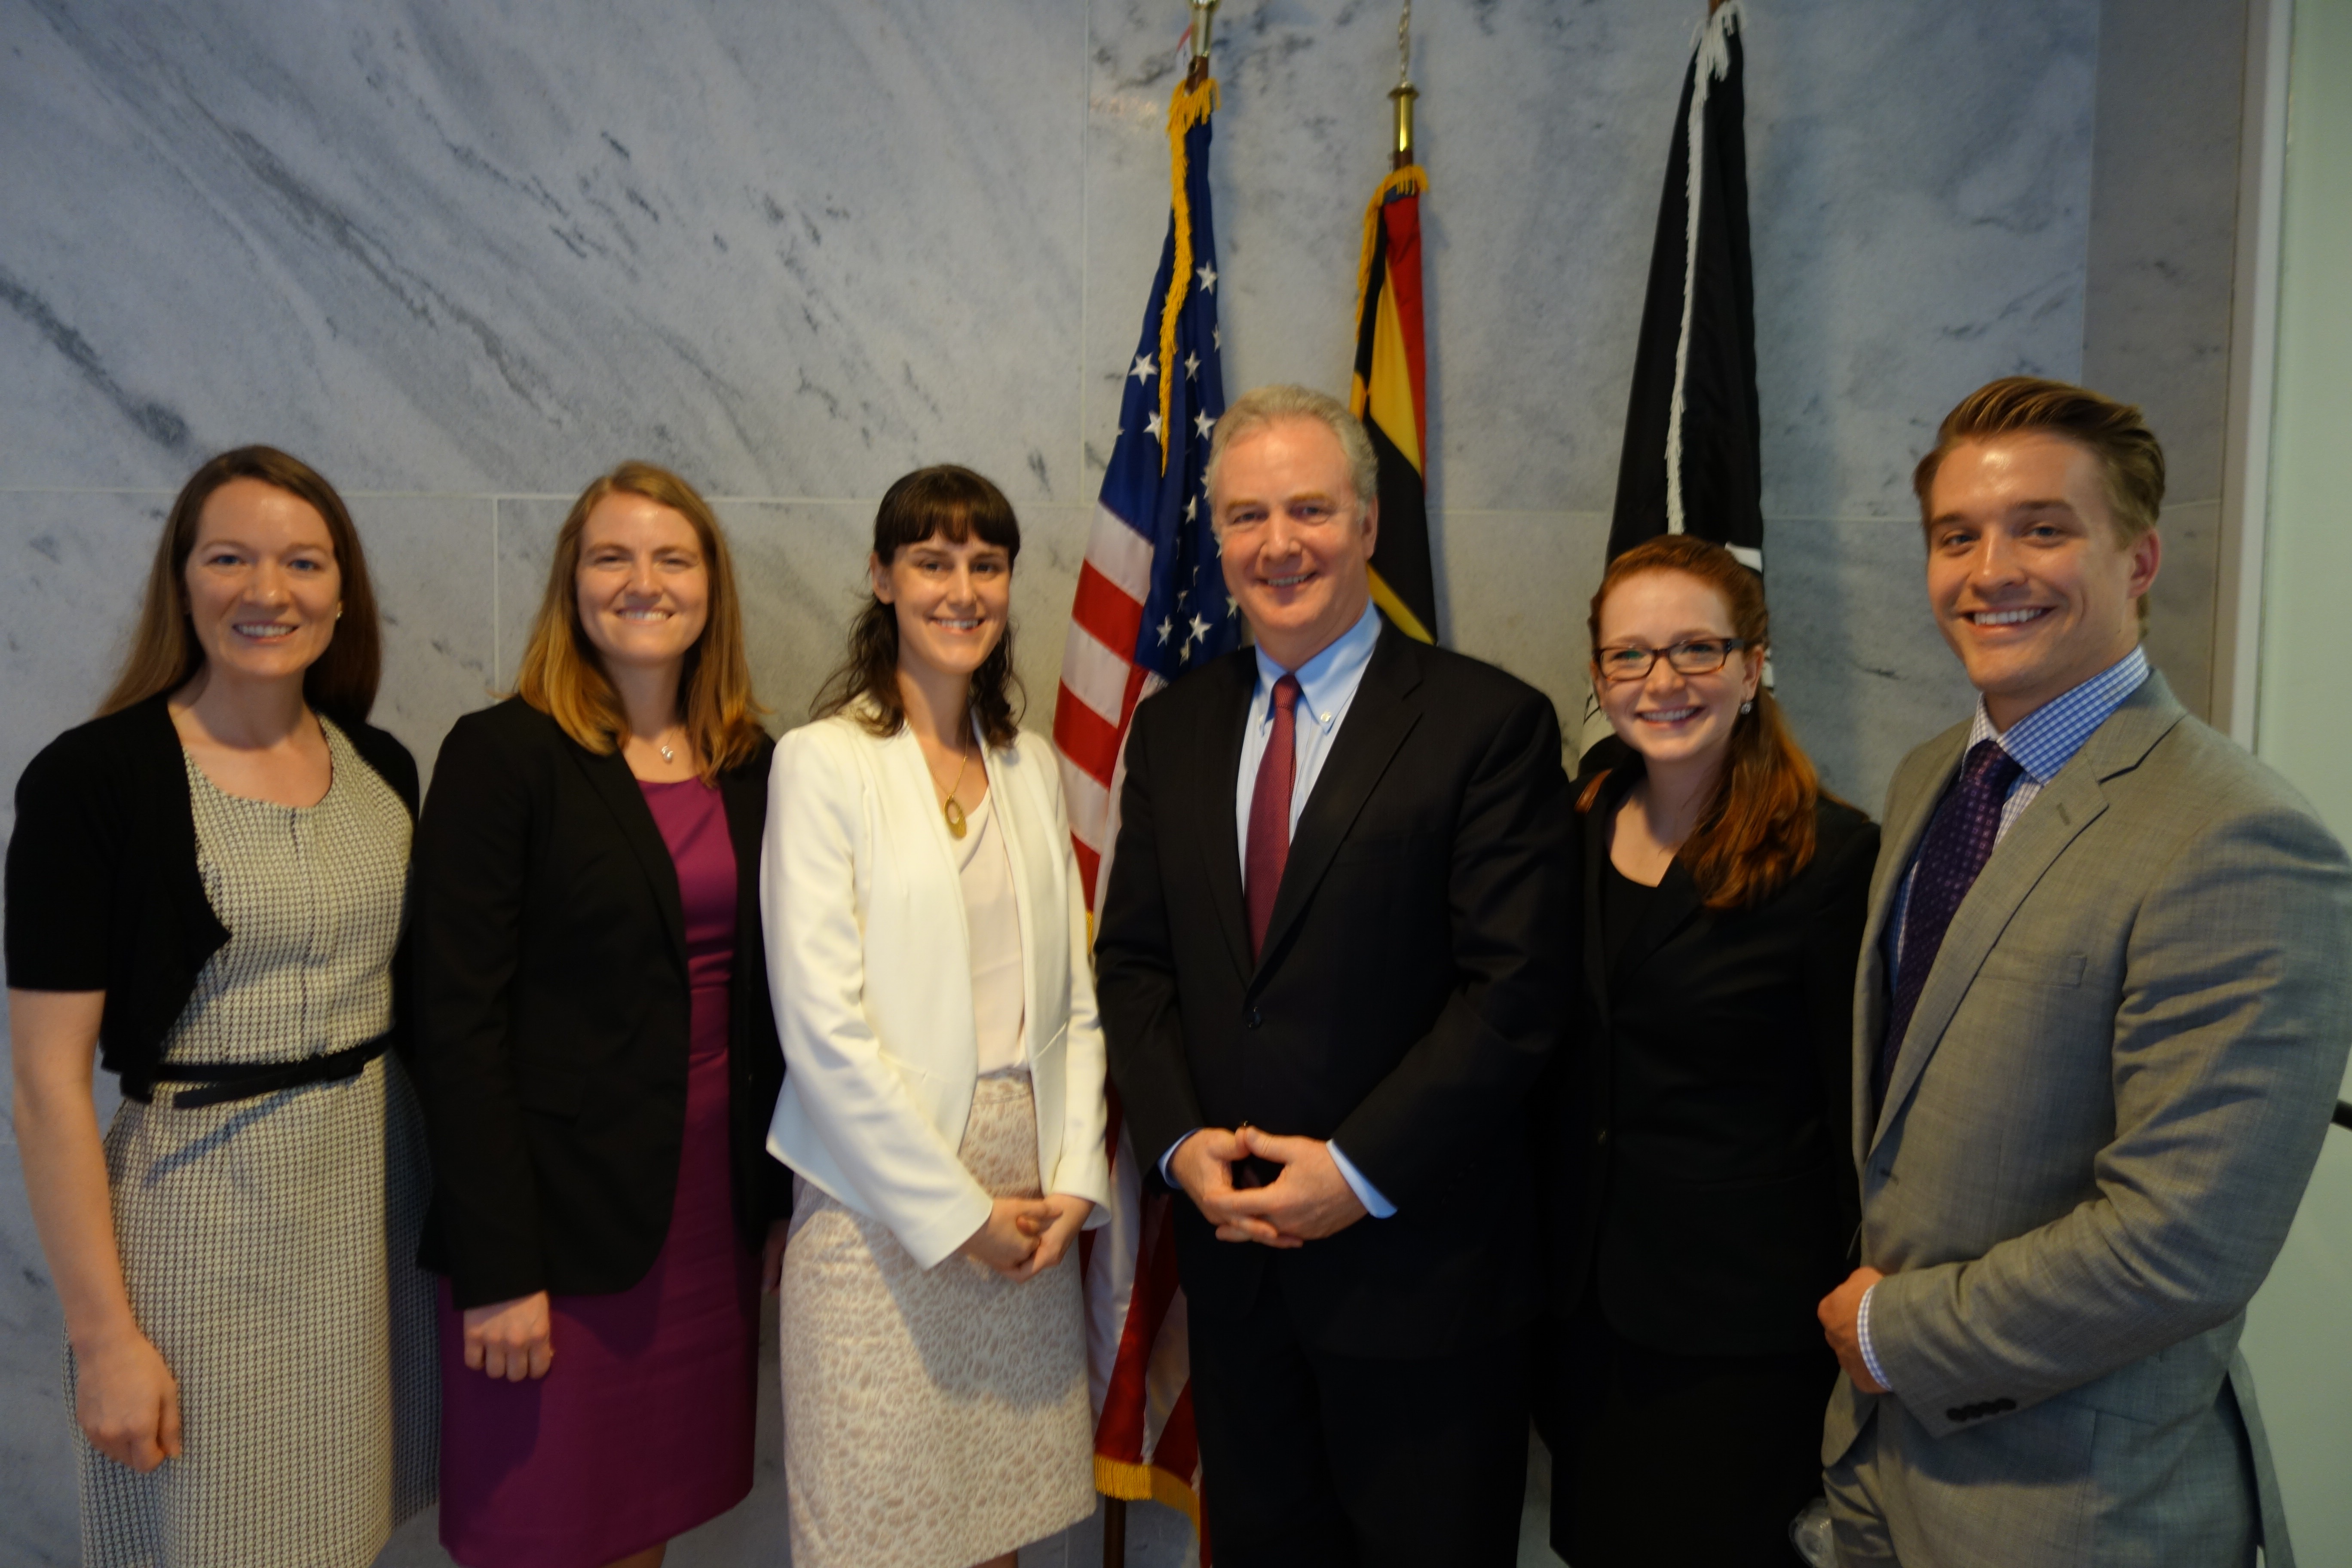 Congressional Visits Day with Senator Van Hollen, AIBS staff, and participants from Delaware, Rhode Island, and Maryland.